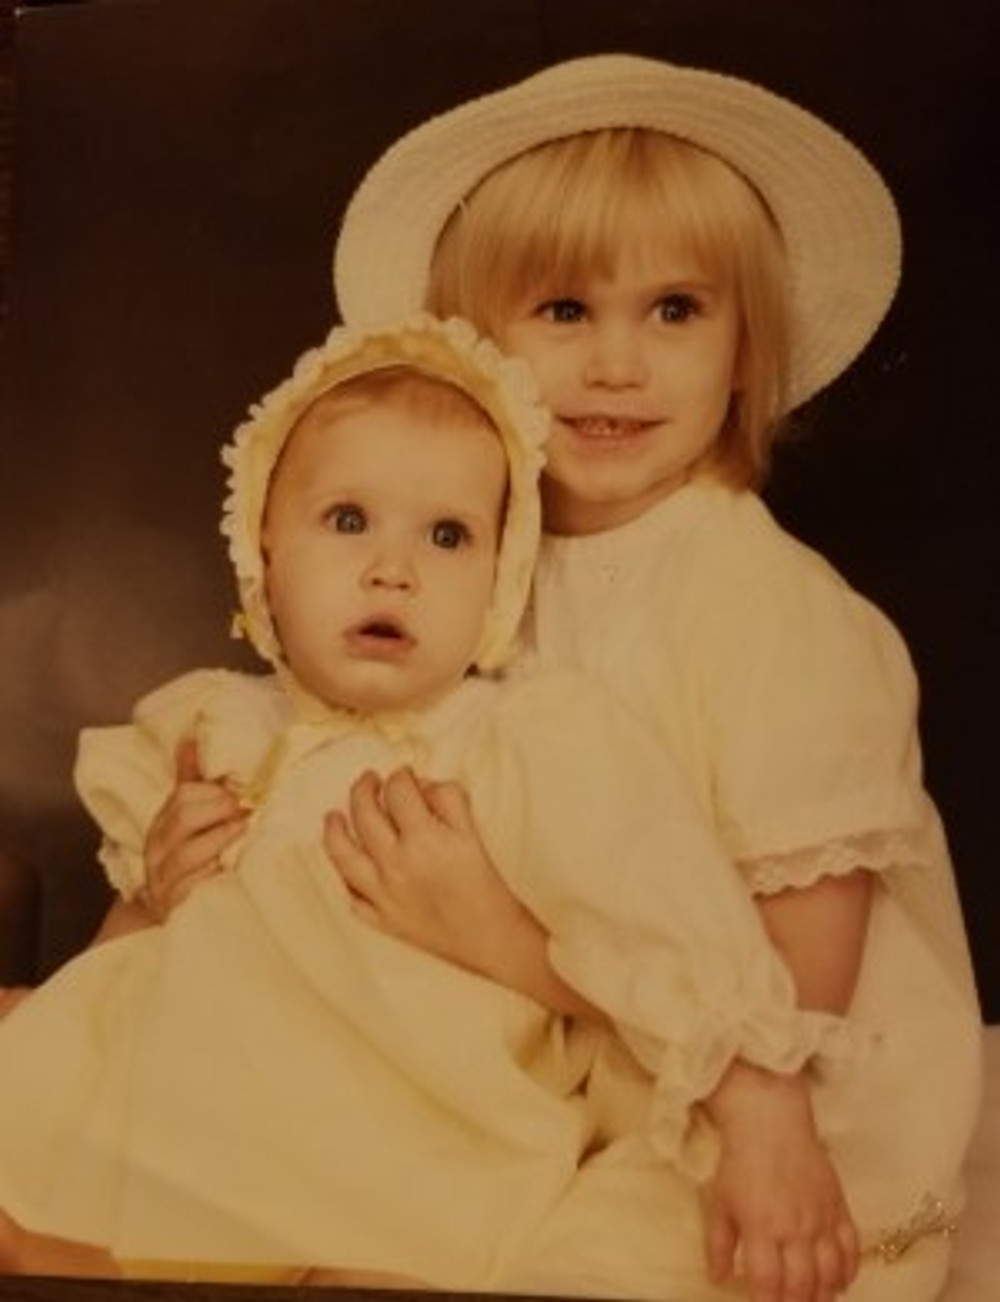 Me, holding my younger sister, 1984.